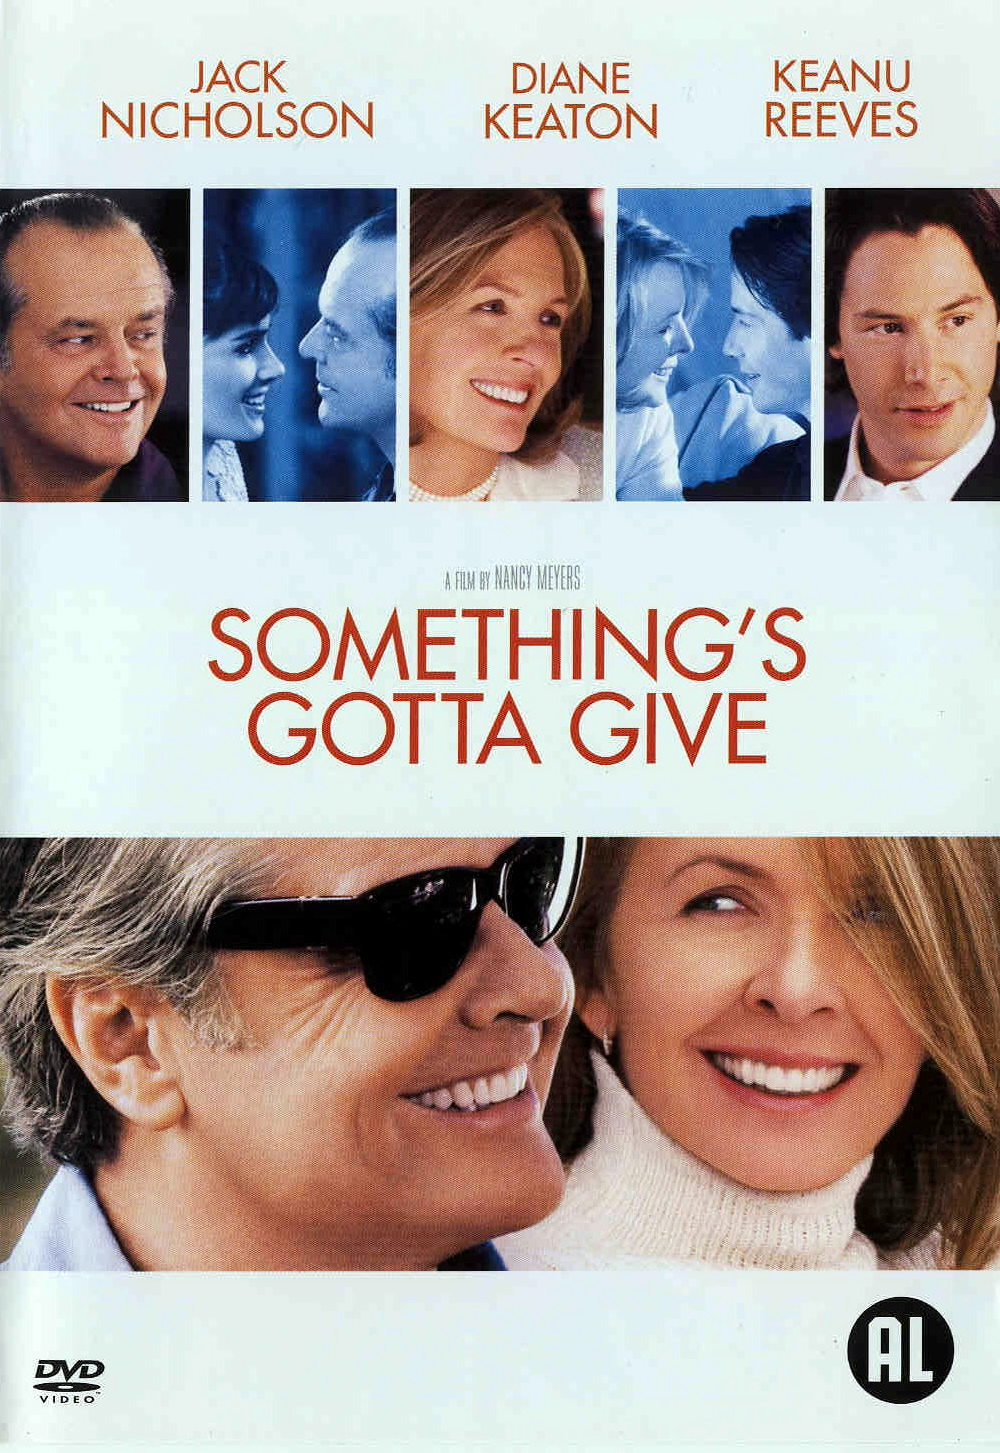 perform somethings gotta give - 442×600